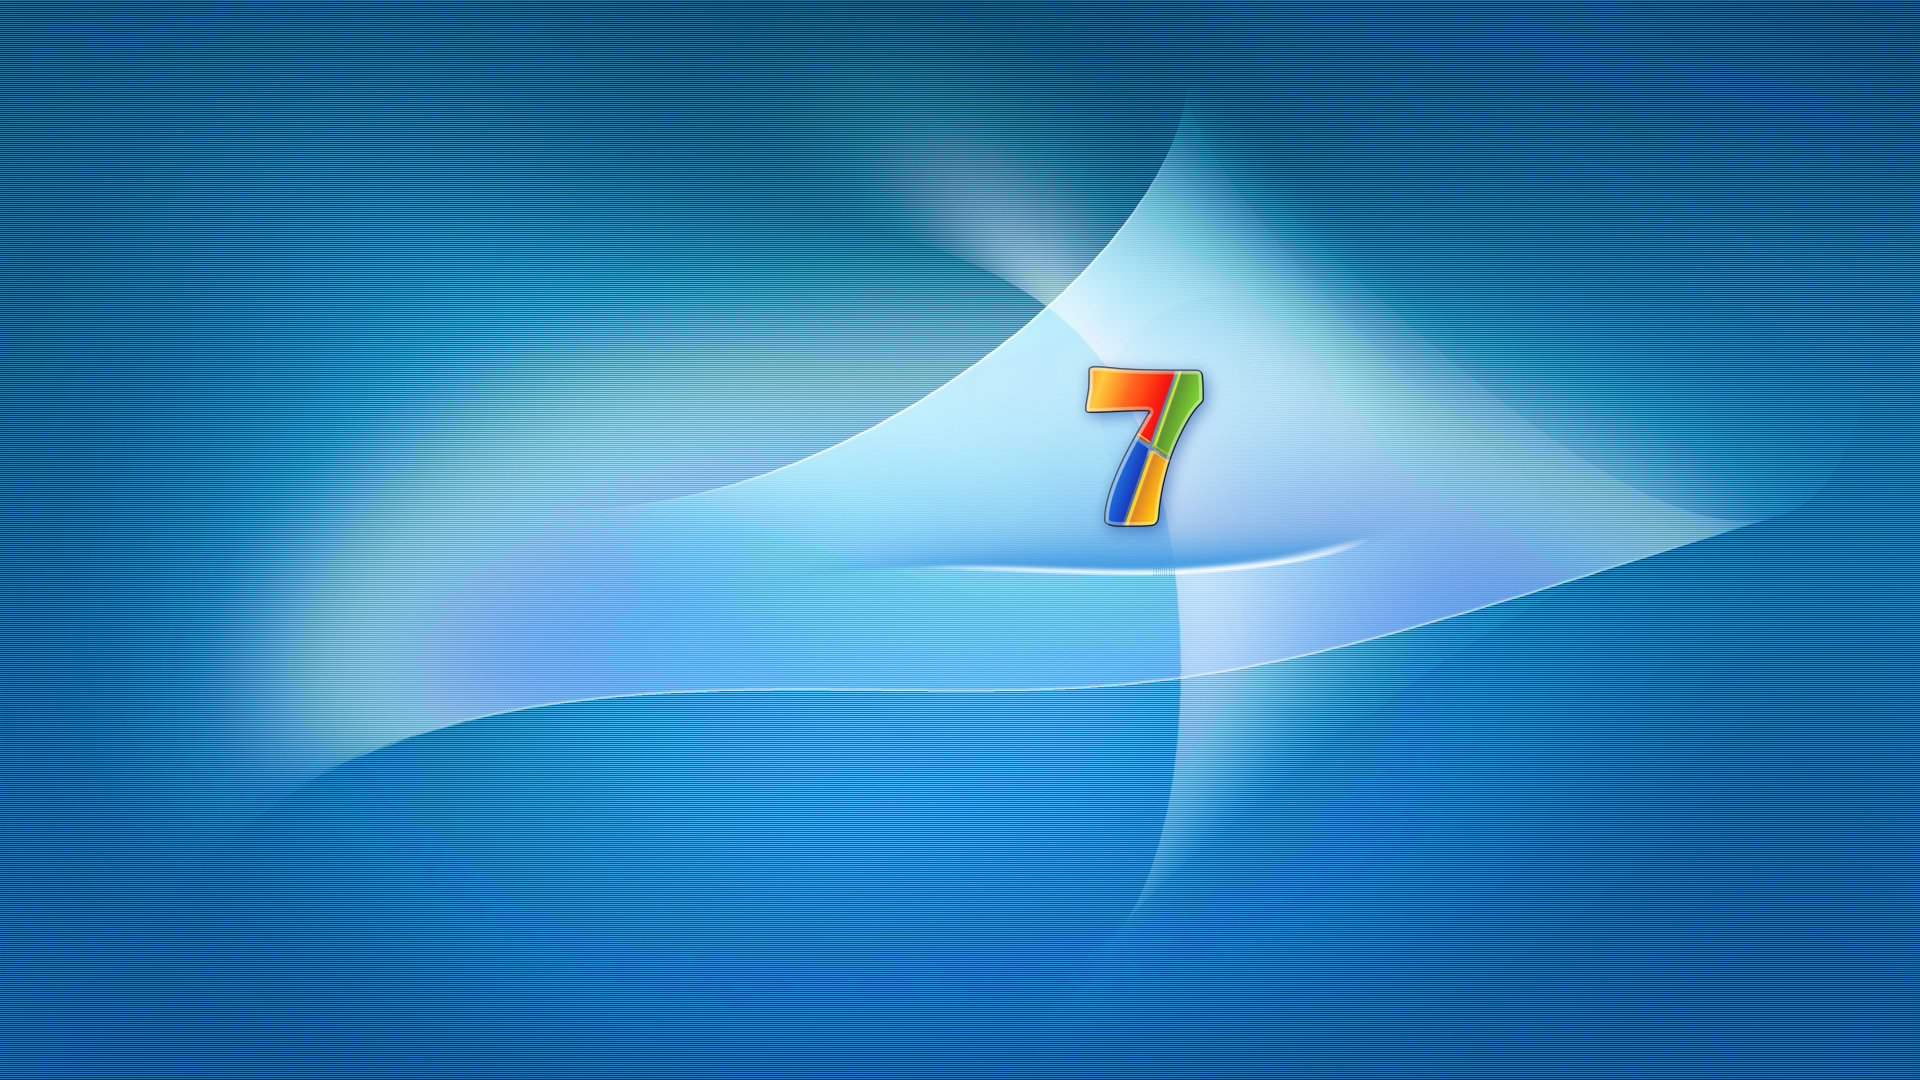 Windows 7 II